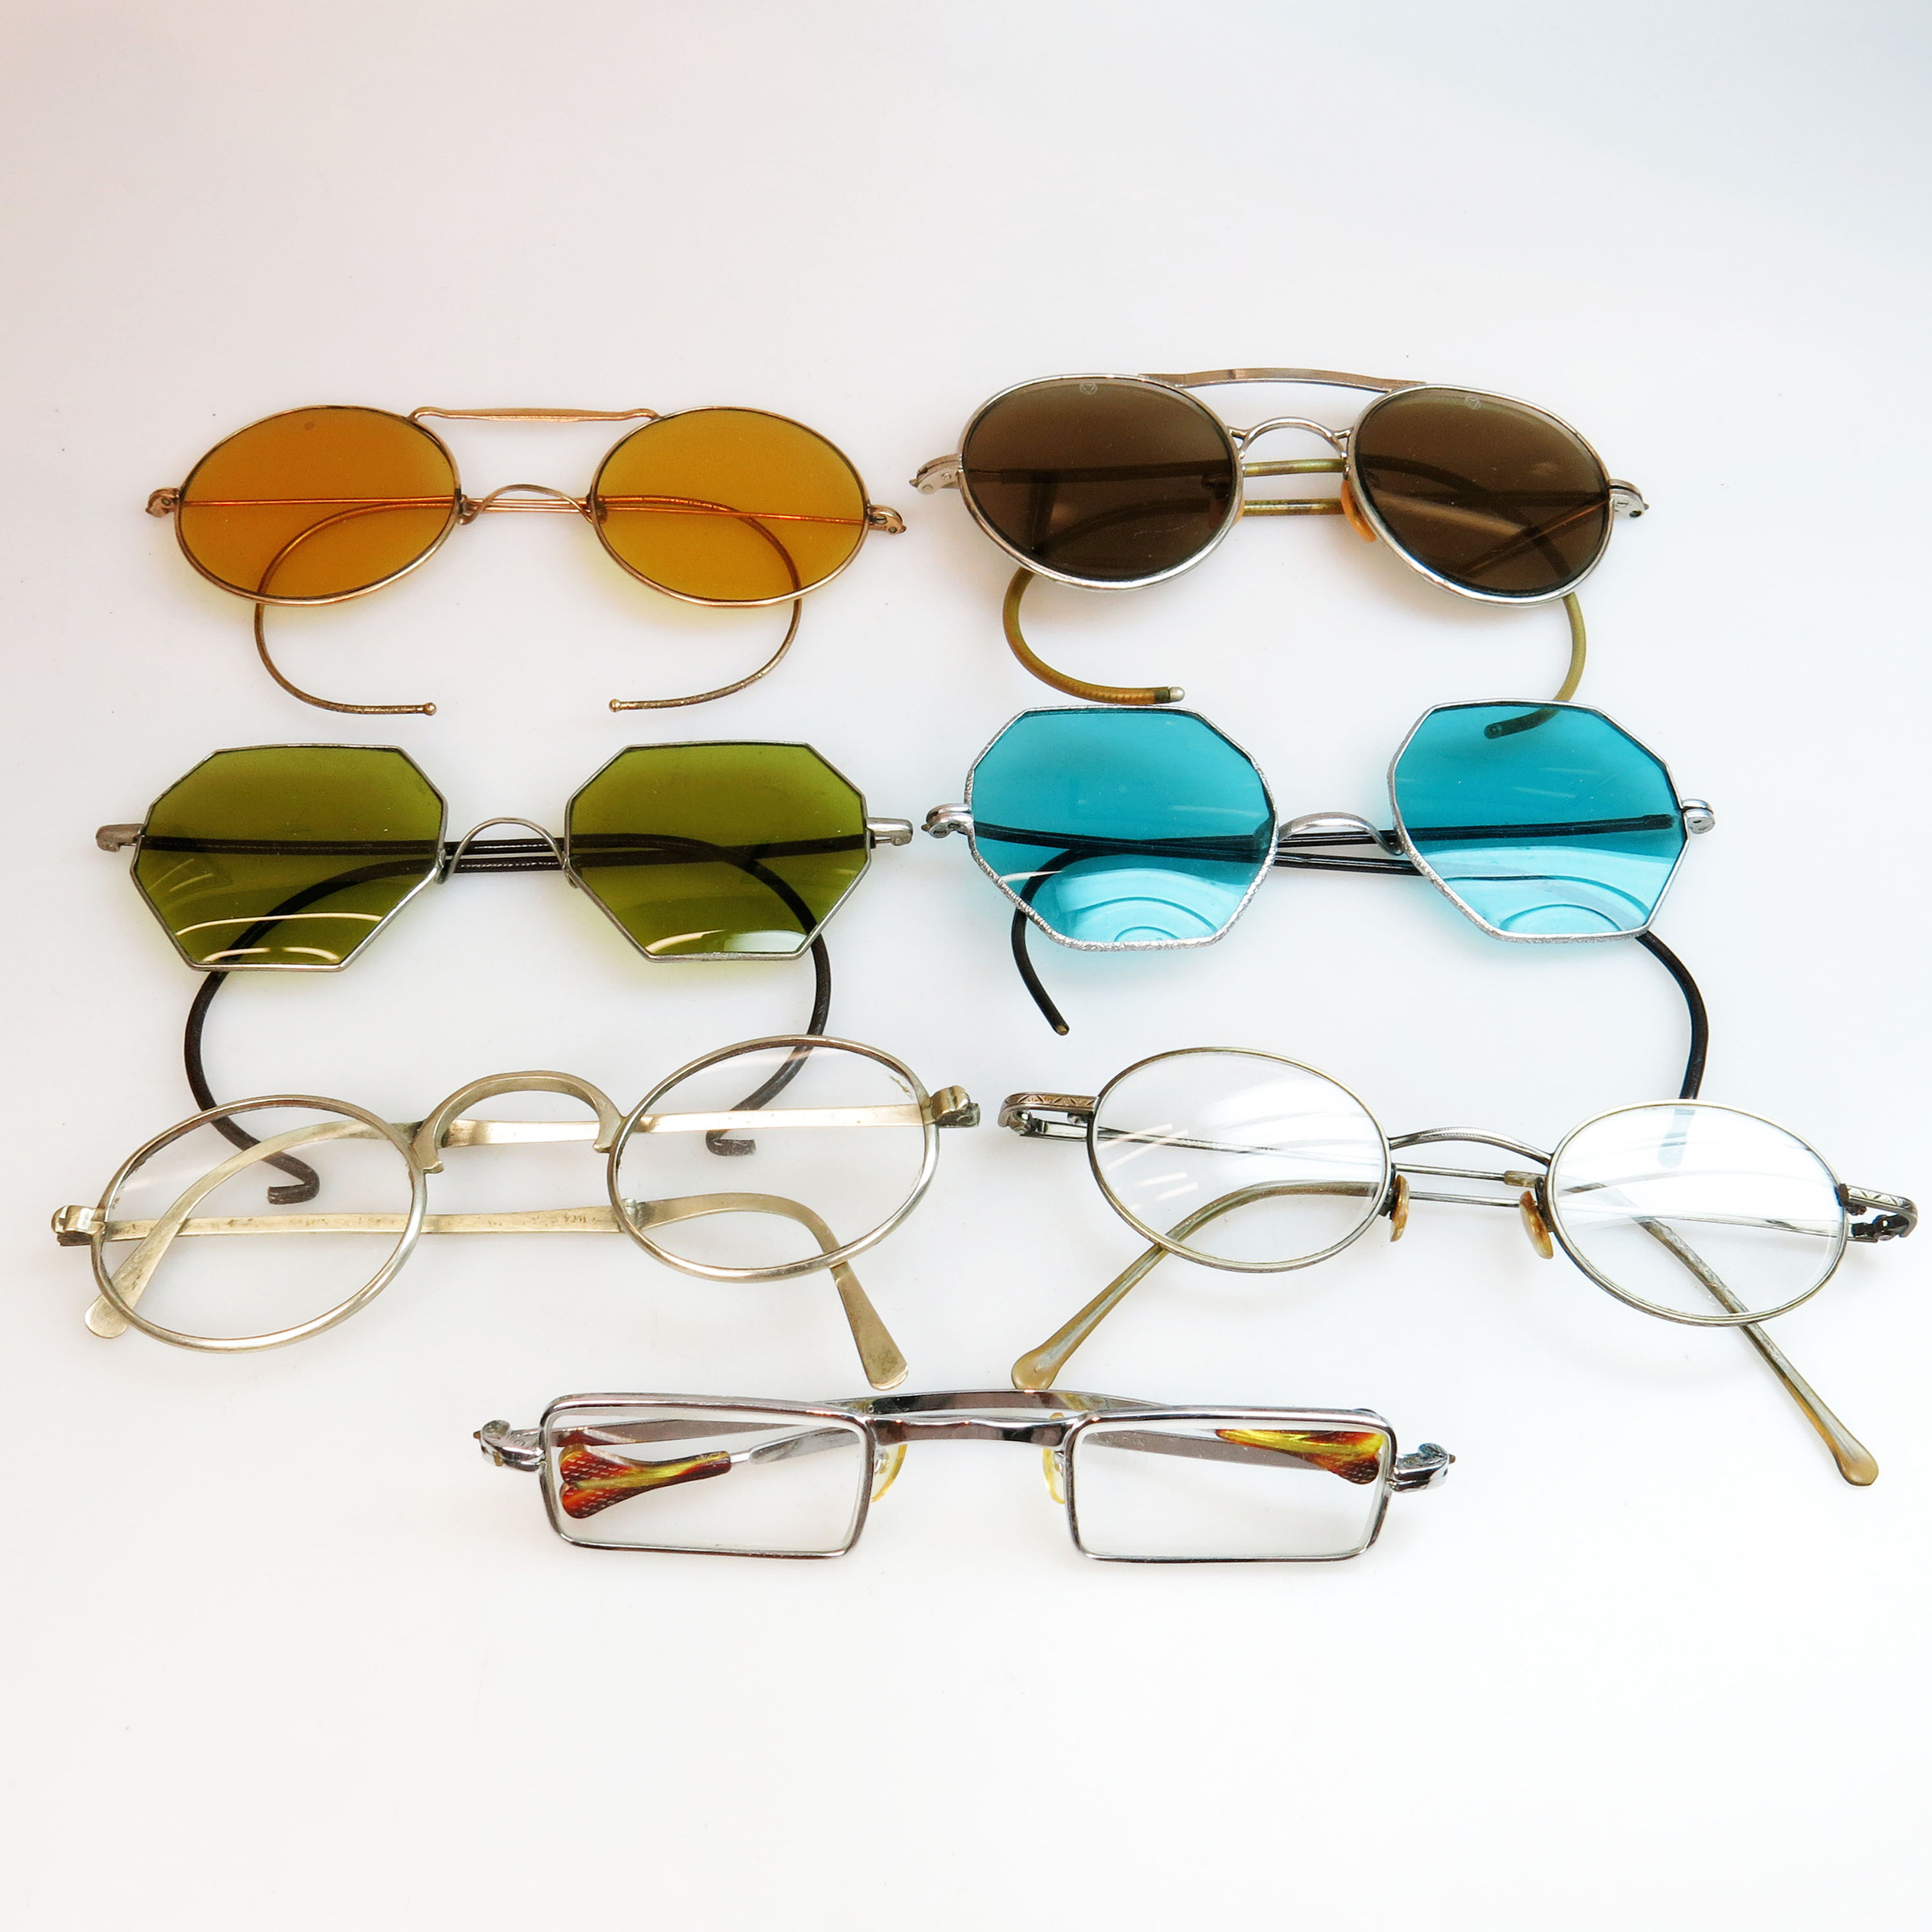 7 Various Pairs Of Spectacles